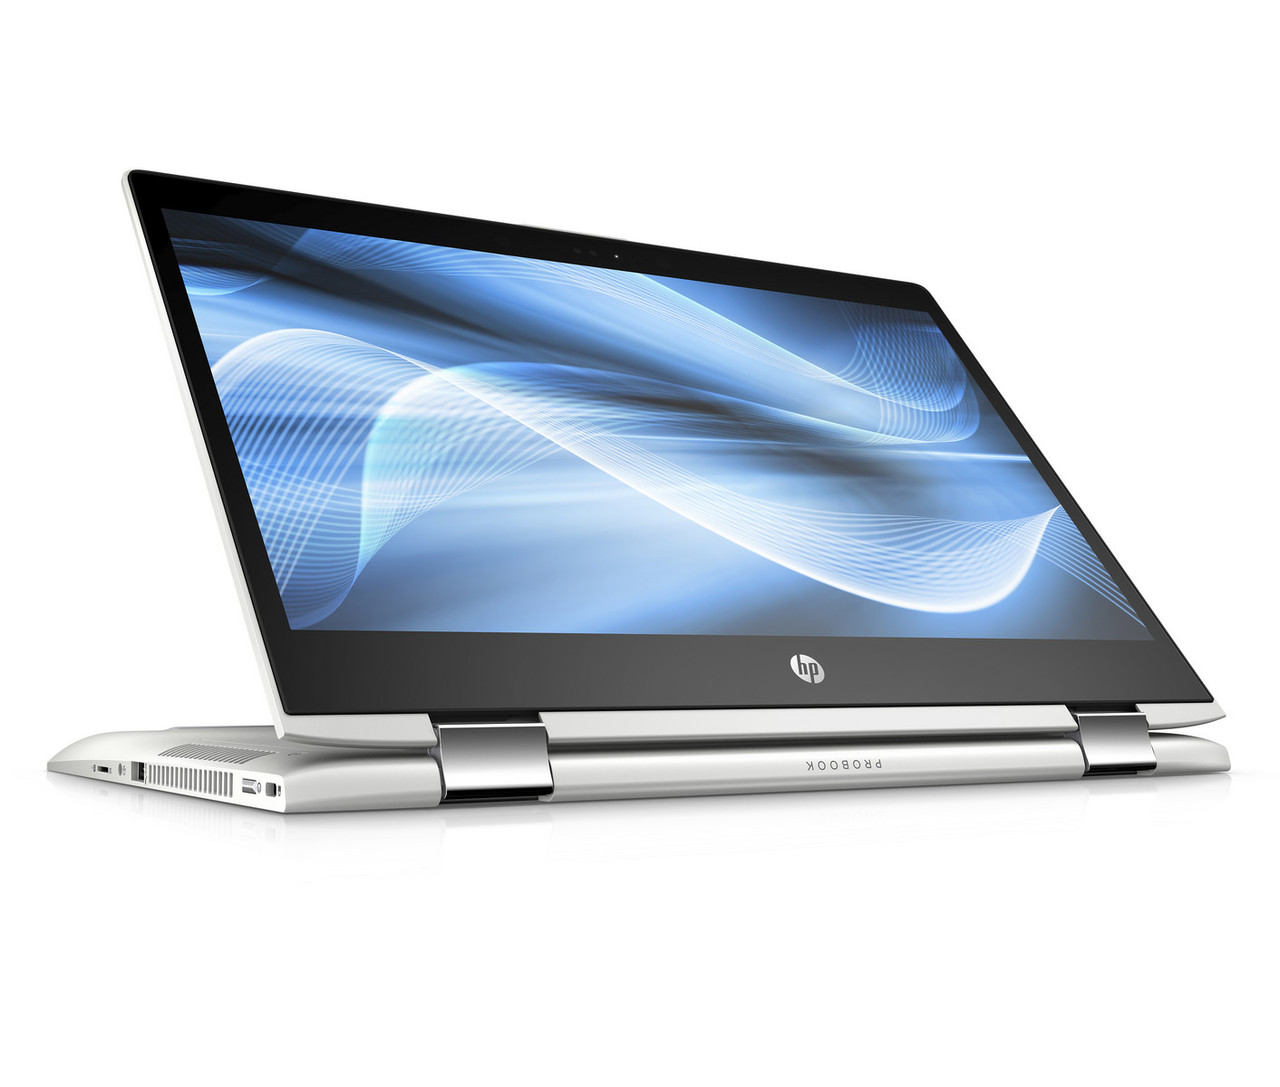 Ноутбук HP Europe 14 ''/ProBook x360 440 G1 Touch /Intel Core i7 8550U 1,8 GHz